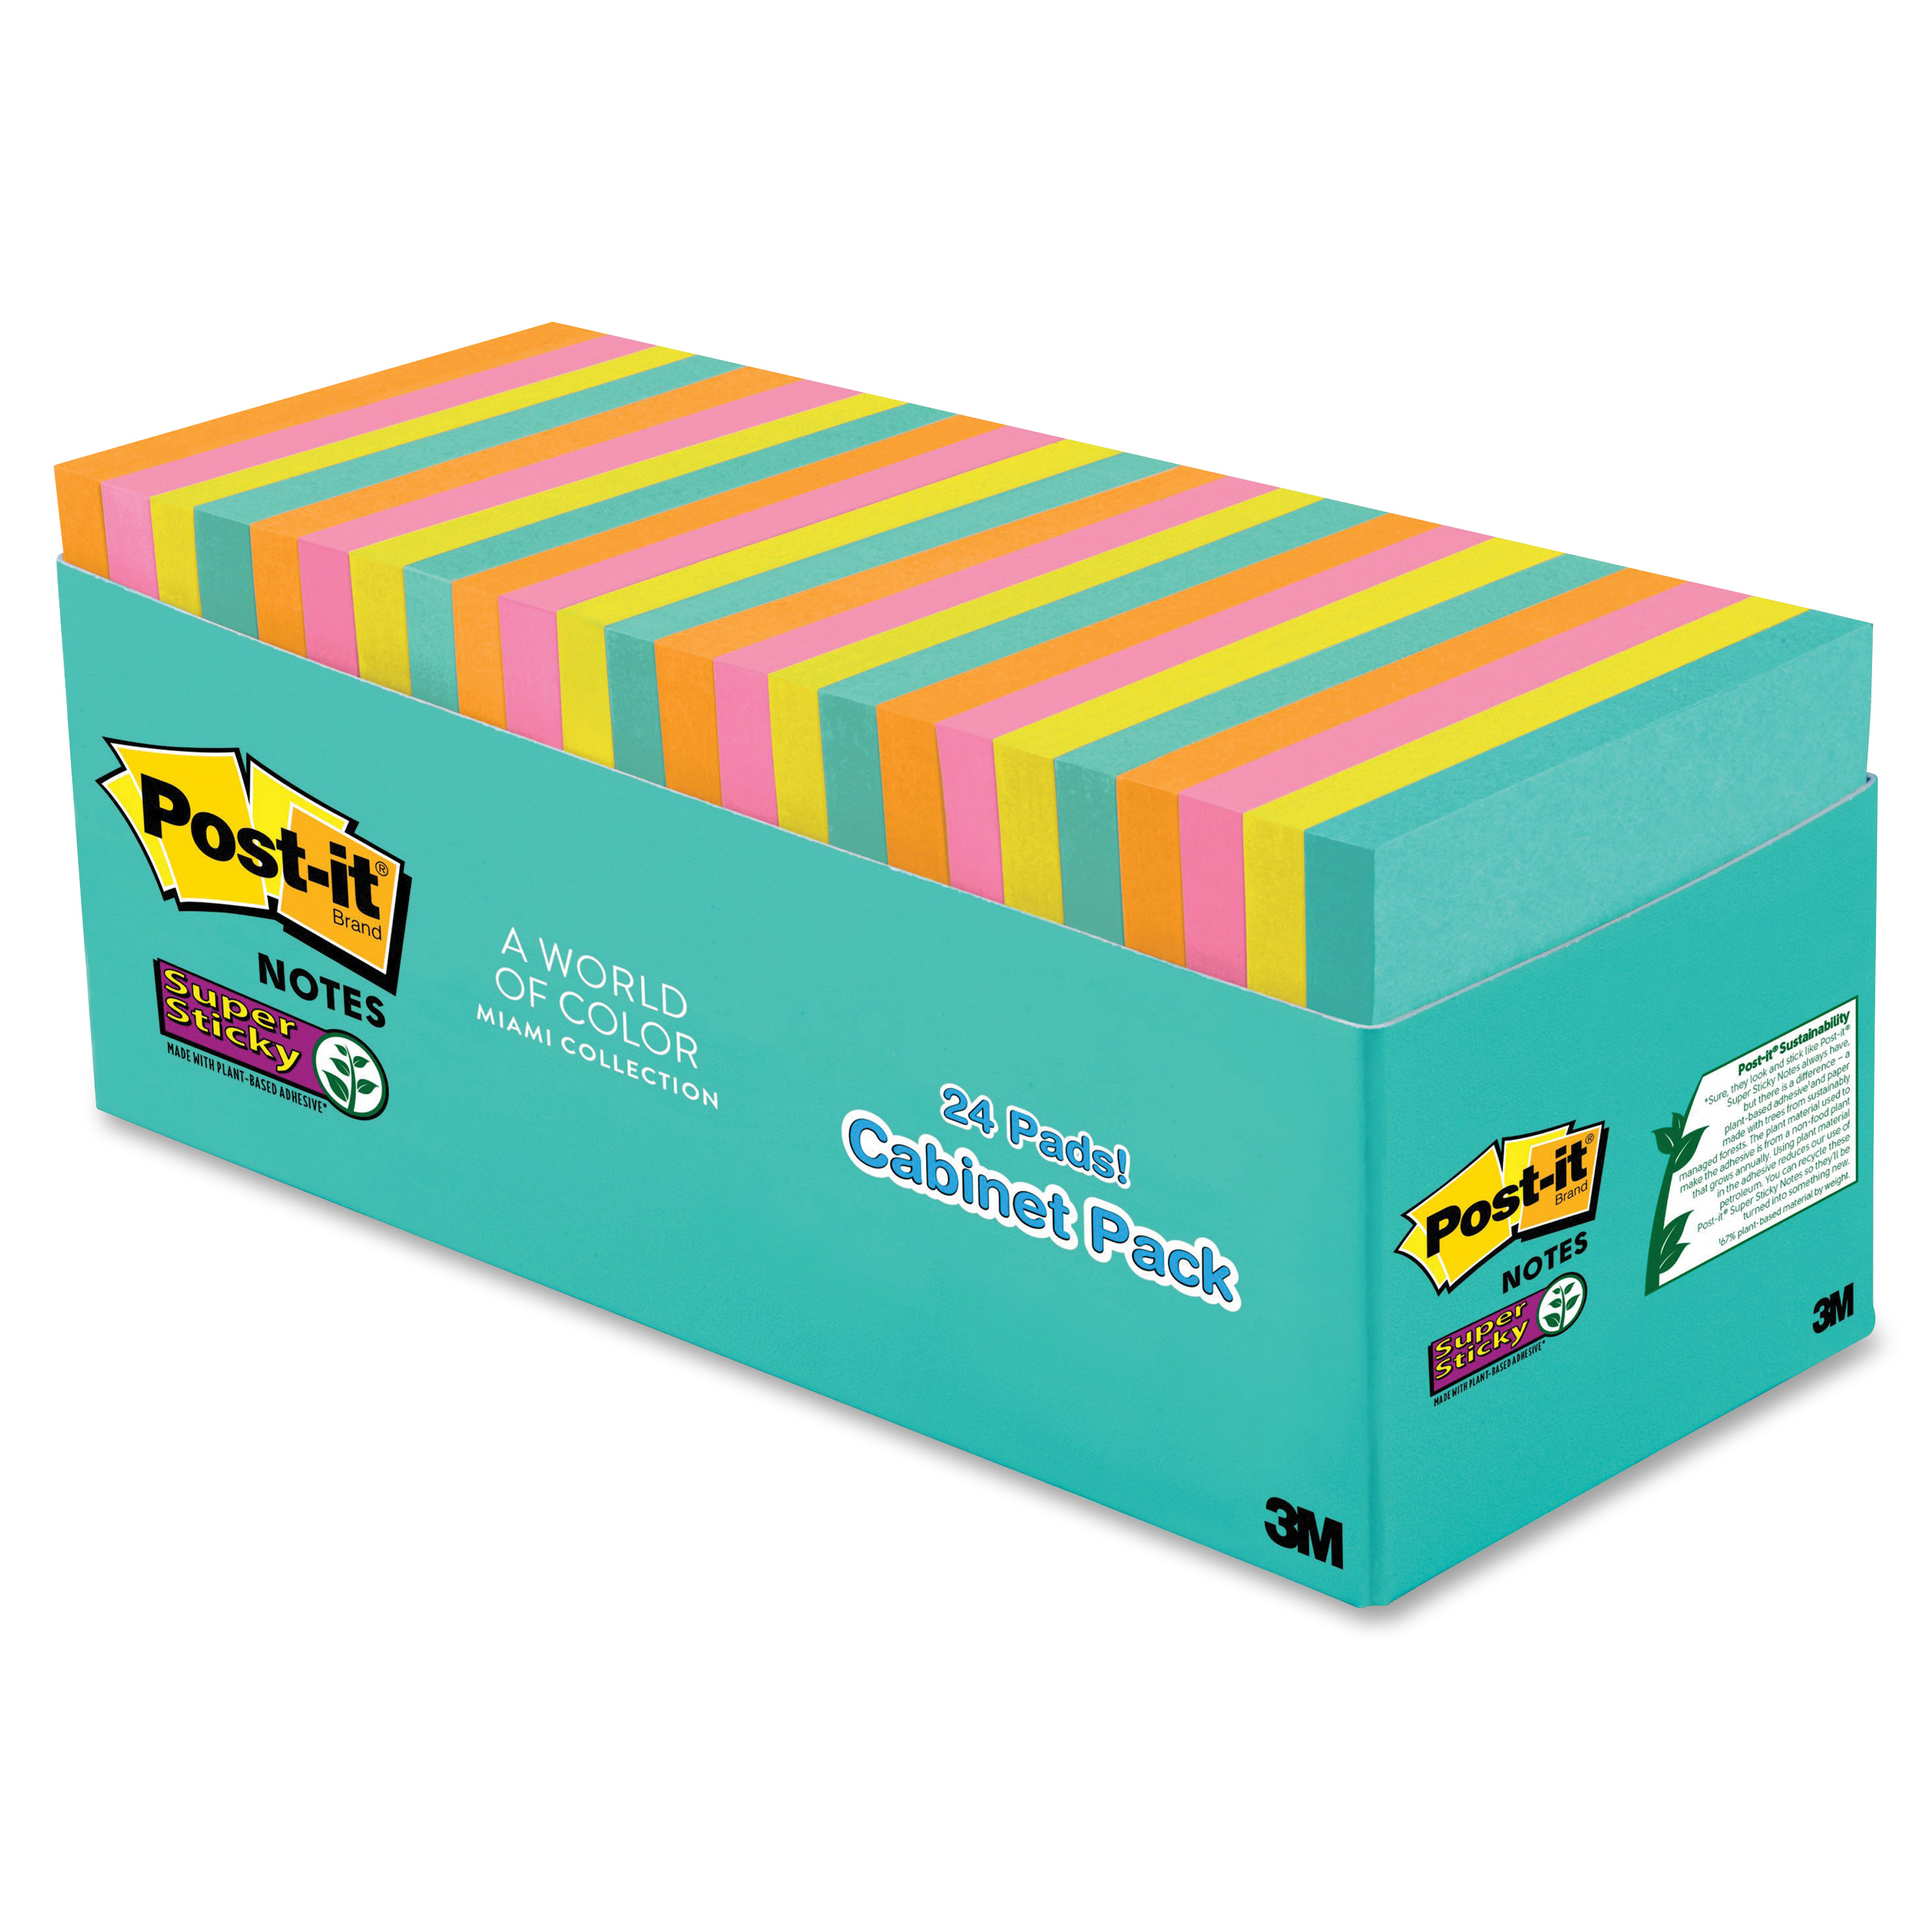 Post It Super Sticky Notes Cabinet Pack, 3in. X 3in., Miami